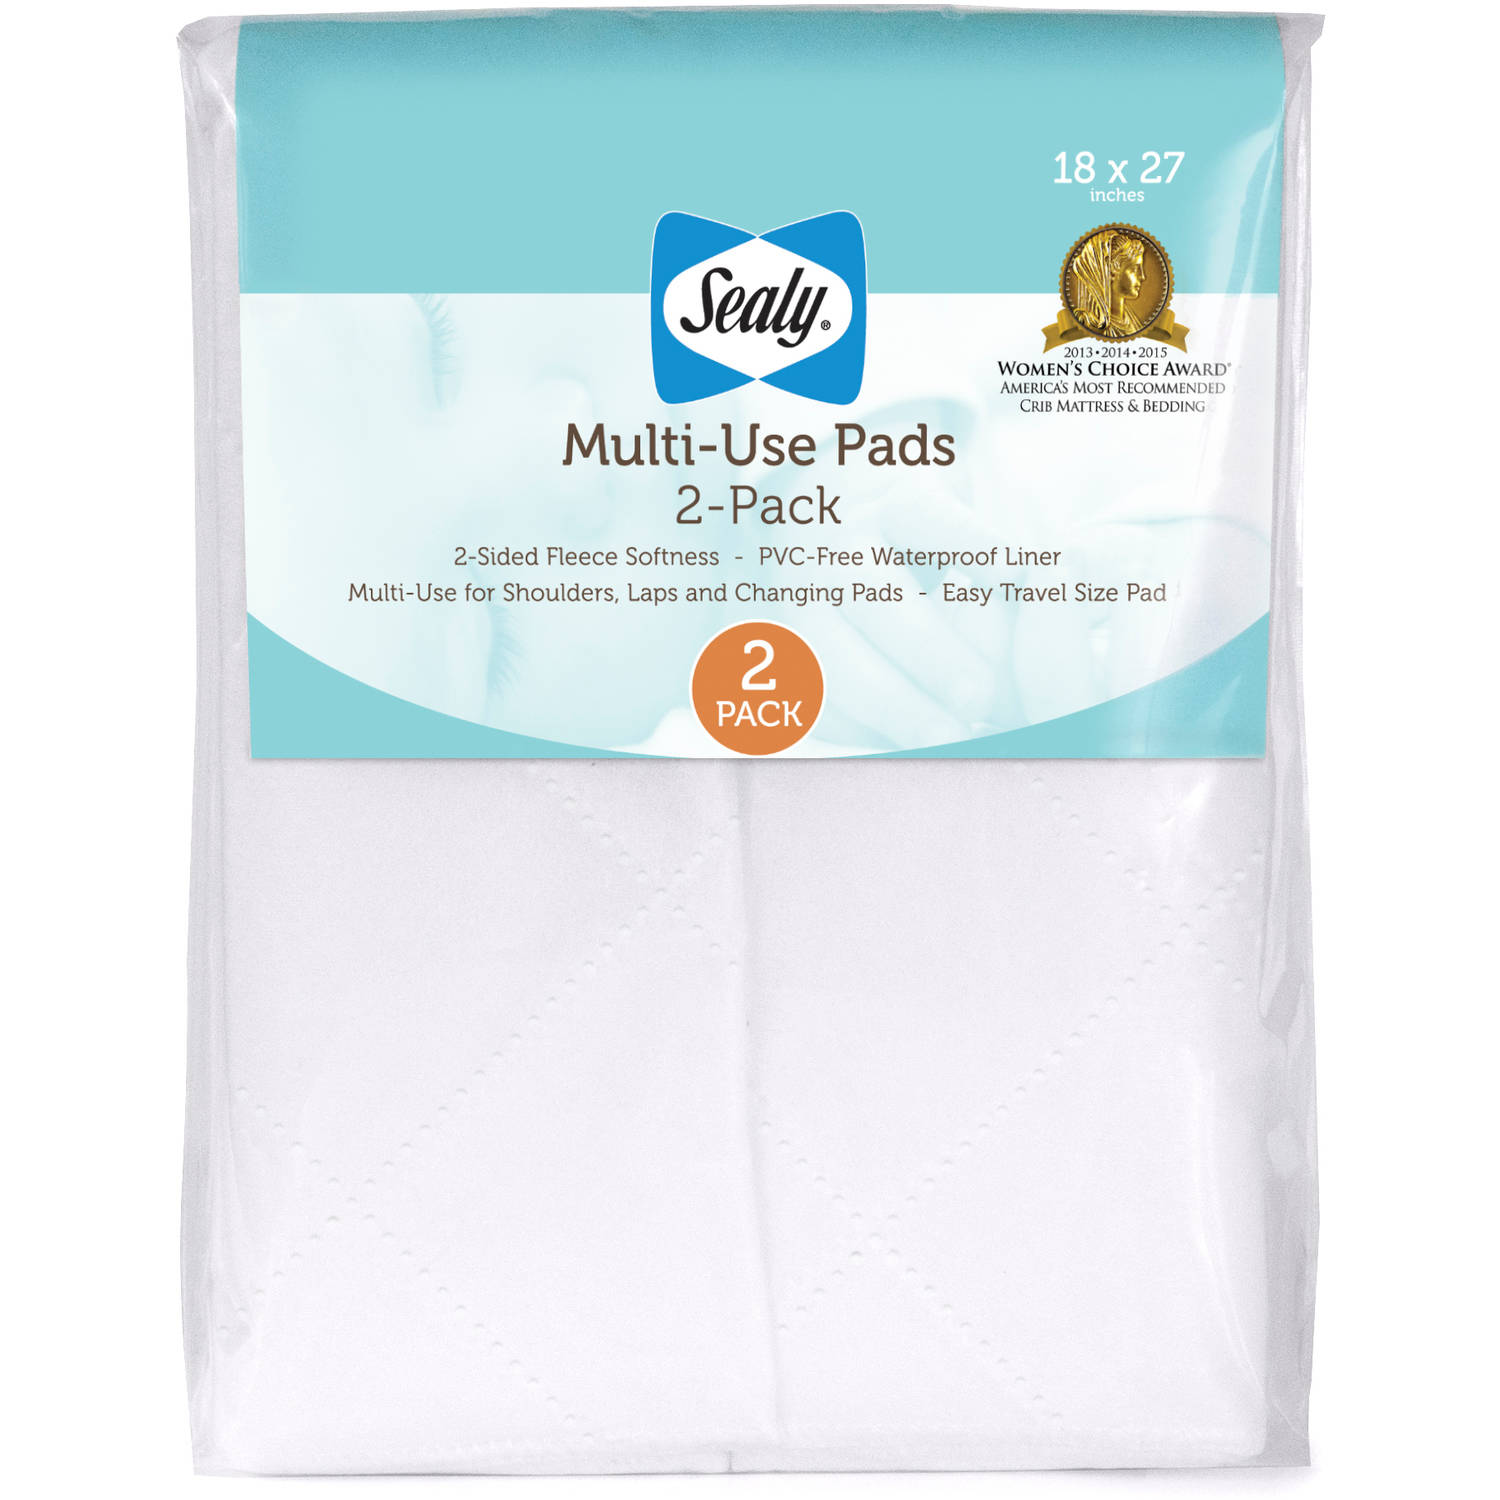 Sealy Multi-Use Pads, 2 Pack by Sealy